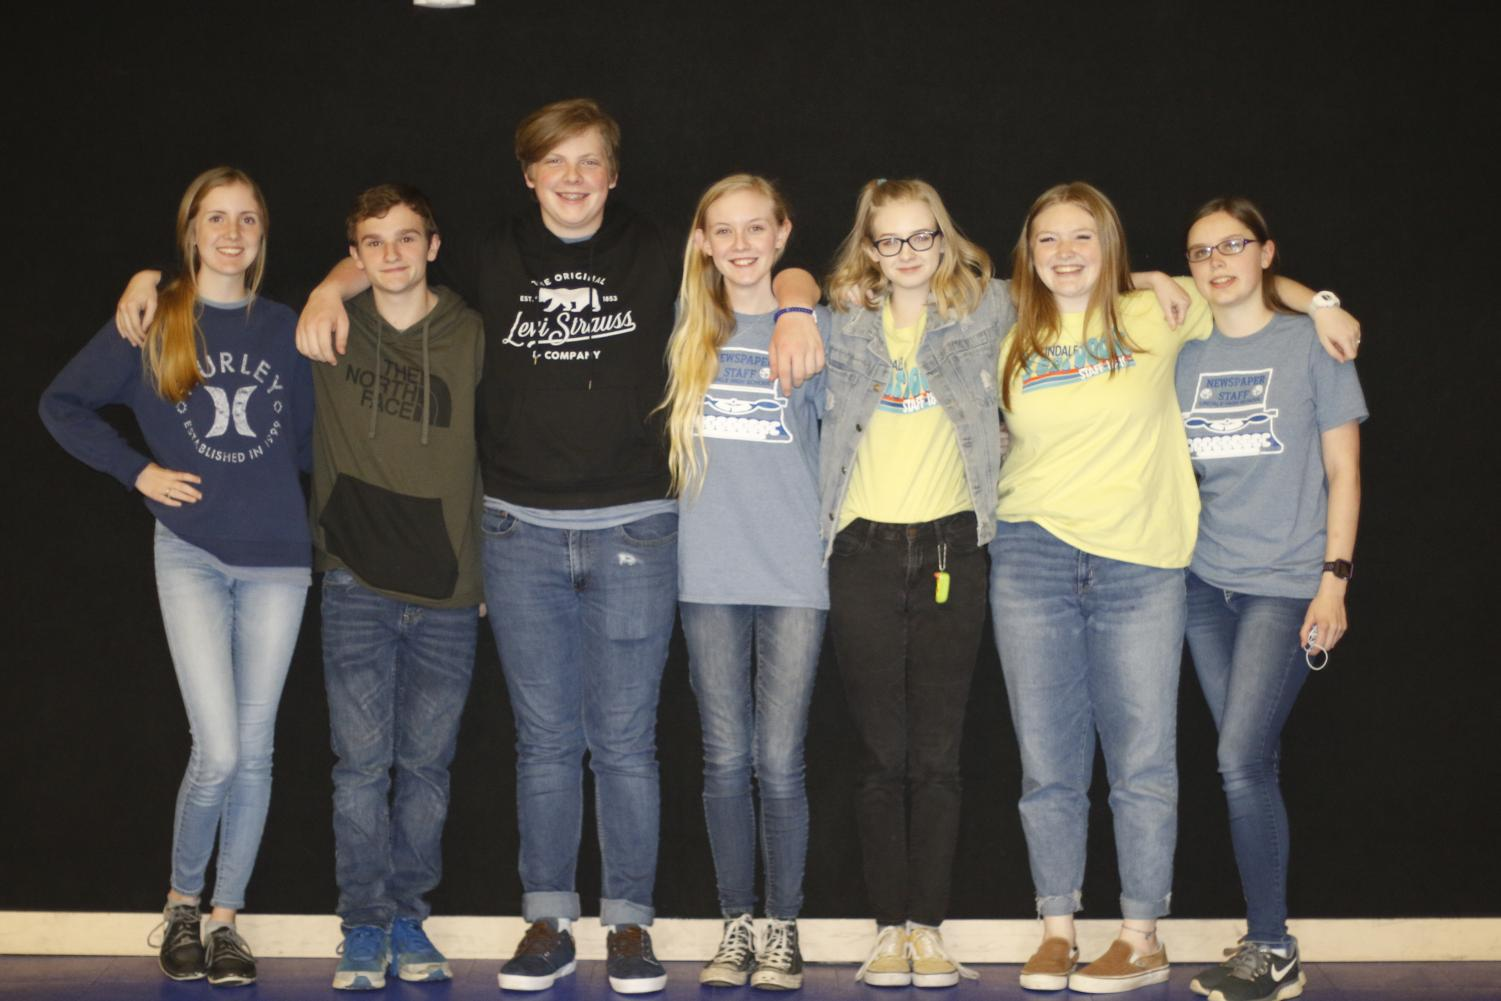 UIL journalism students stand together after their district competition. From here, alumni Bailey Spencer went to win feature writing at UIL state.